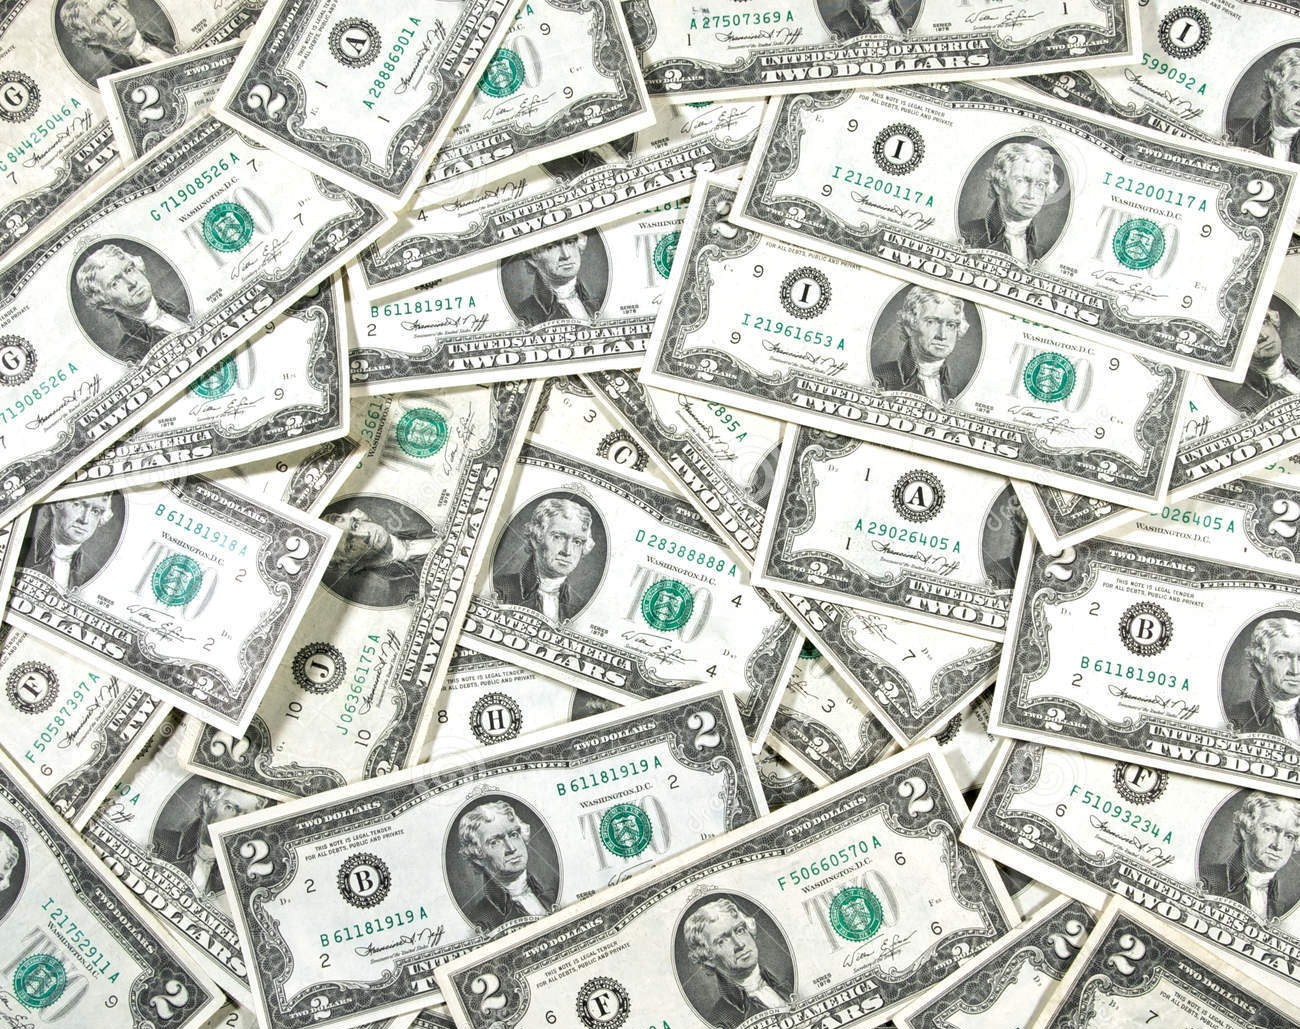 Jared Unzipped: Your Two Dollar Bill Is Worth Two Dollars